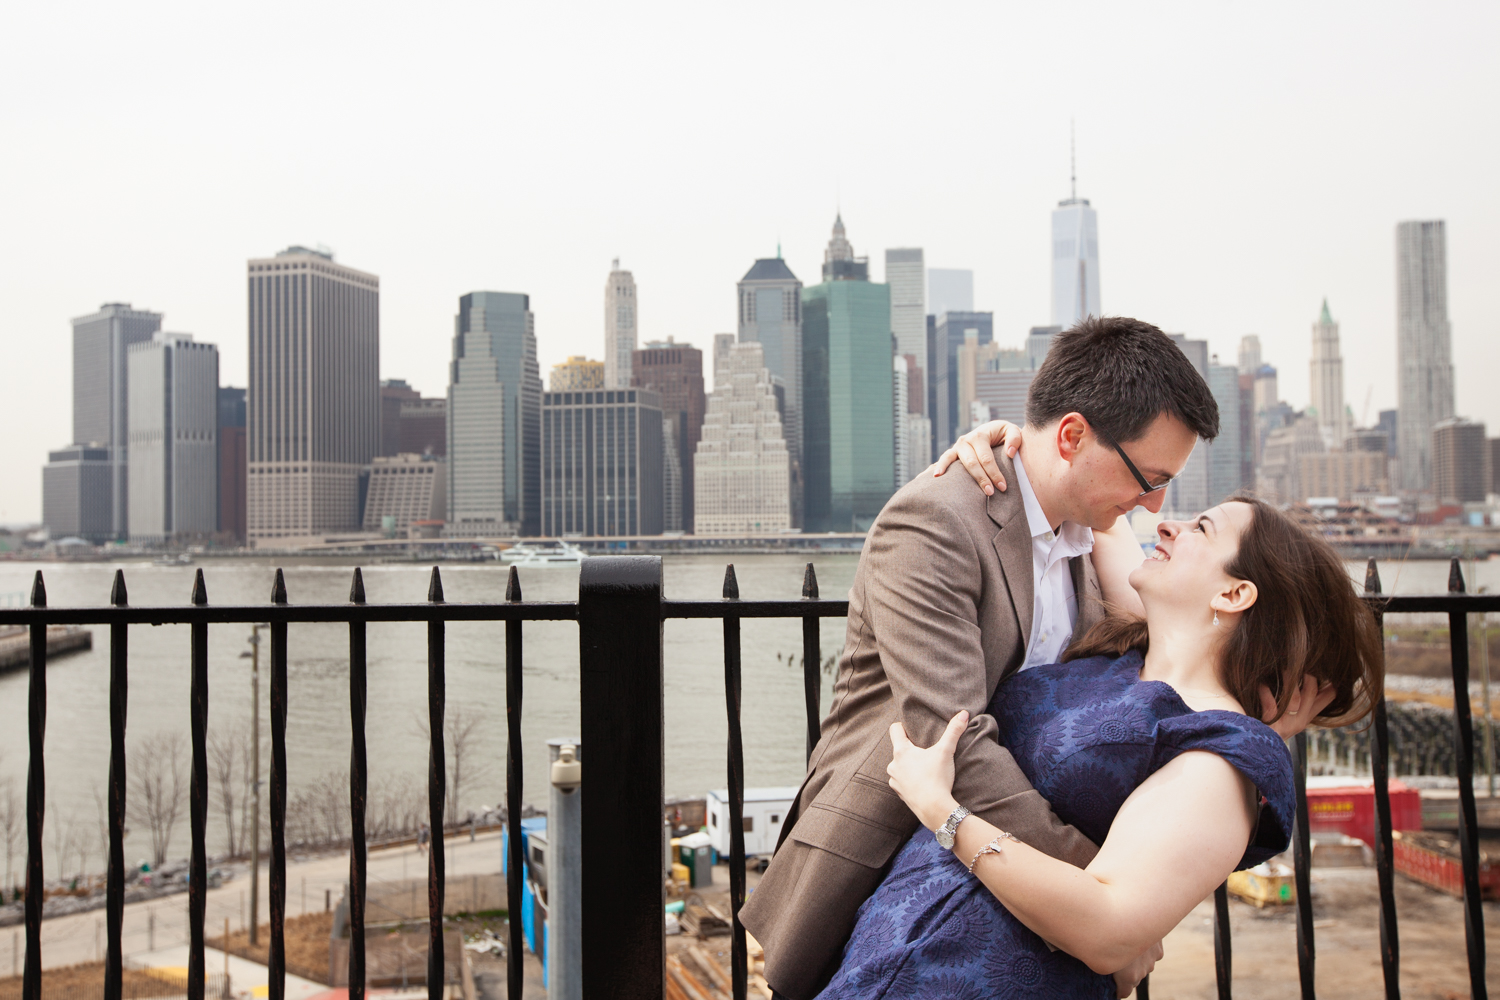 Couple dancing on Brooklyn Promenade with NYC skyline in background